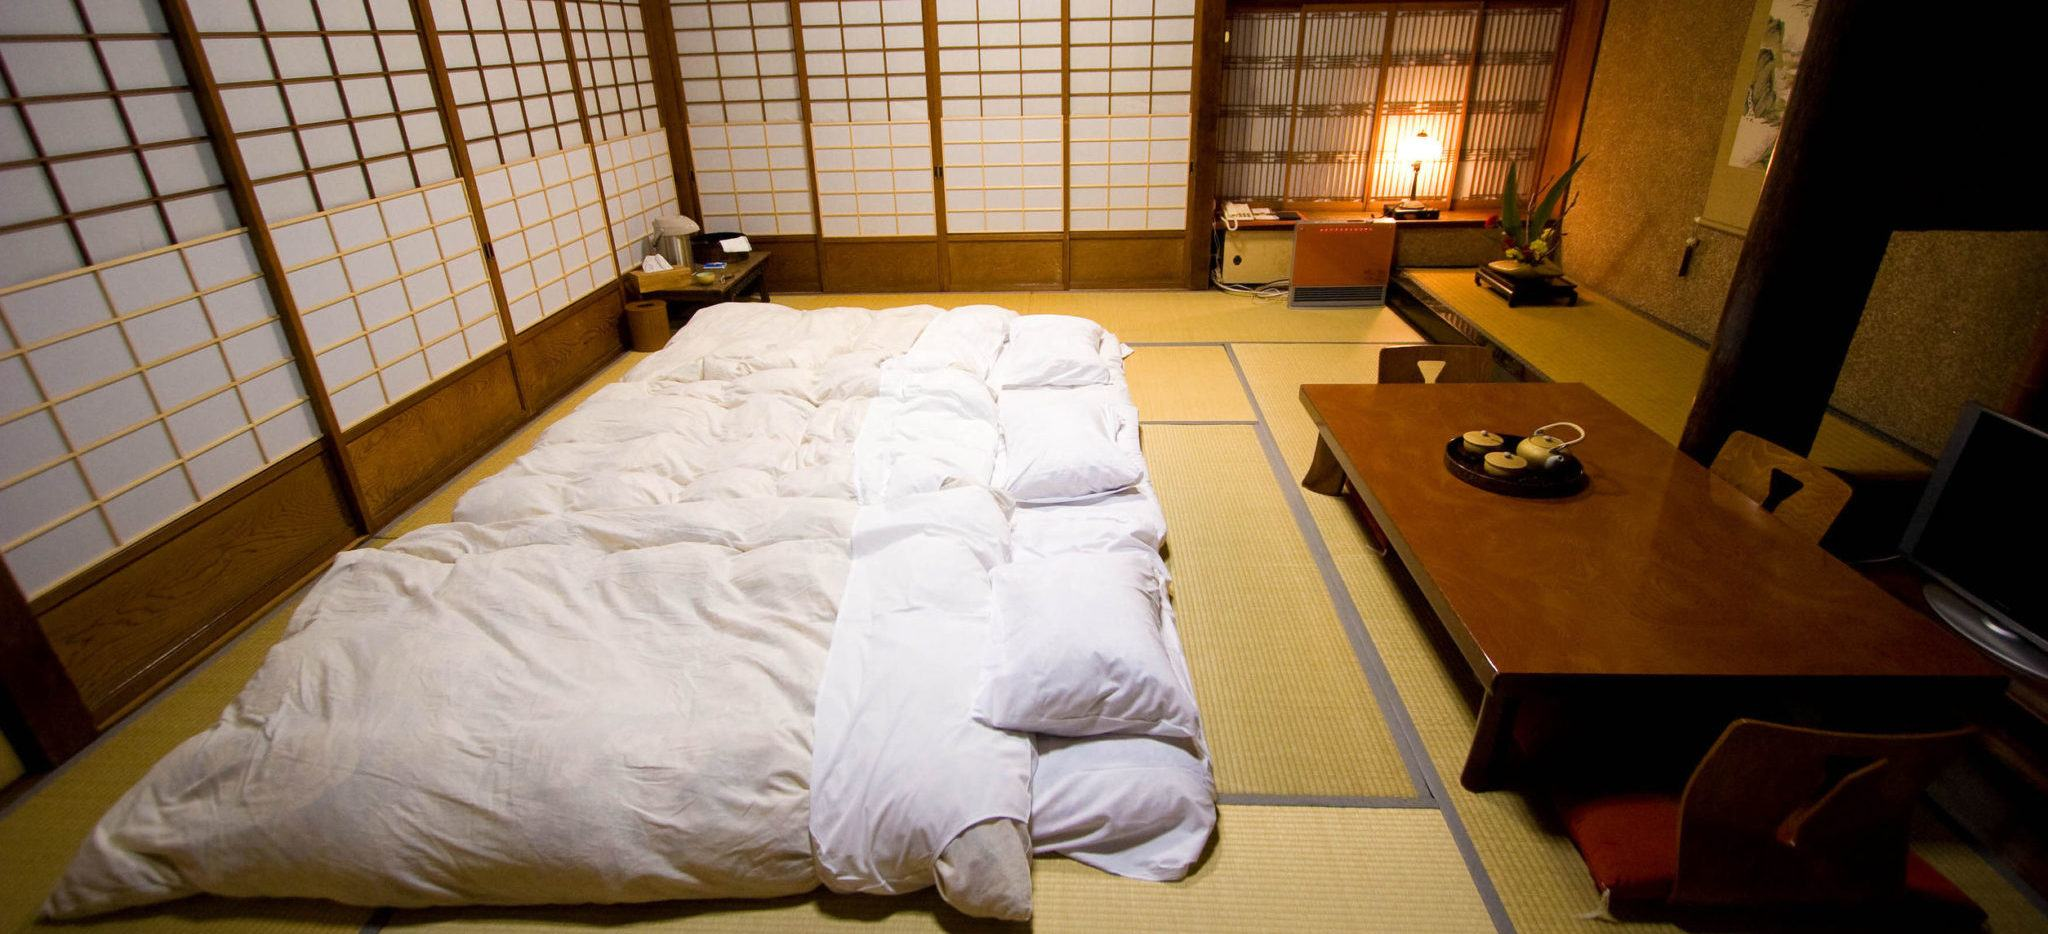 Futon Japan Get A Great Nights Sleep On A Futon Bed In Japan And Learn